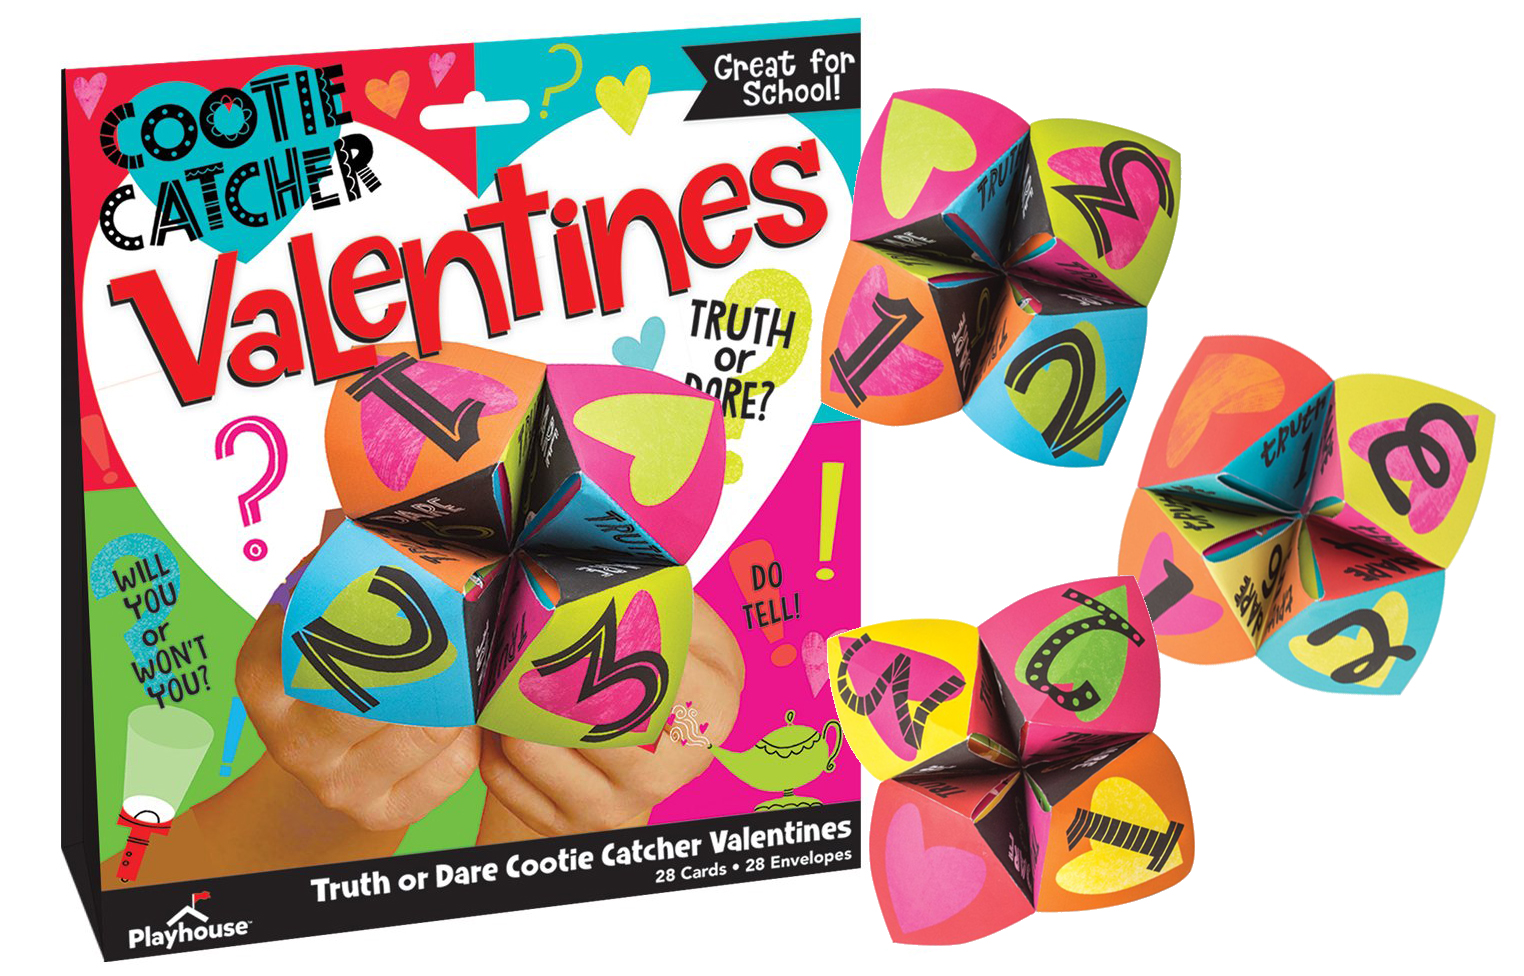 Cootie Catcher Valentines by Paperhouse Productions